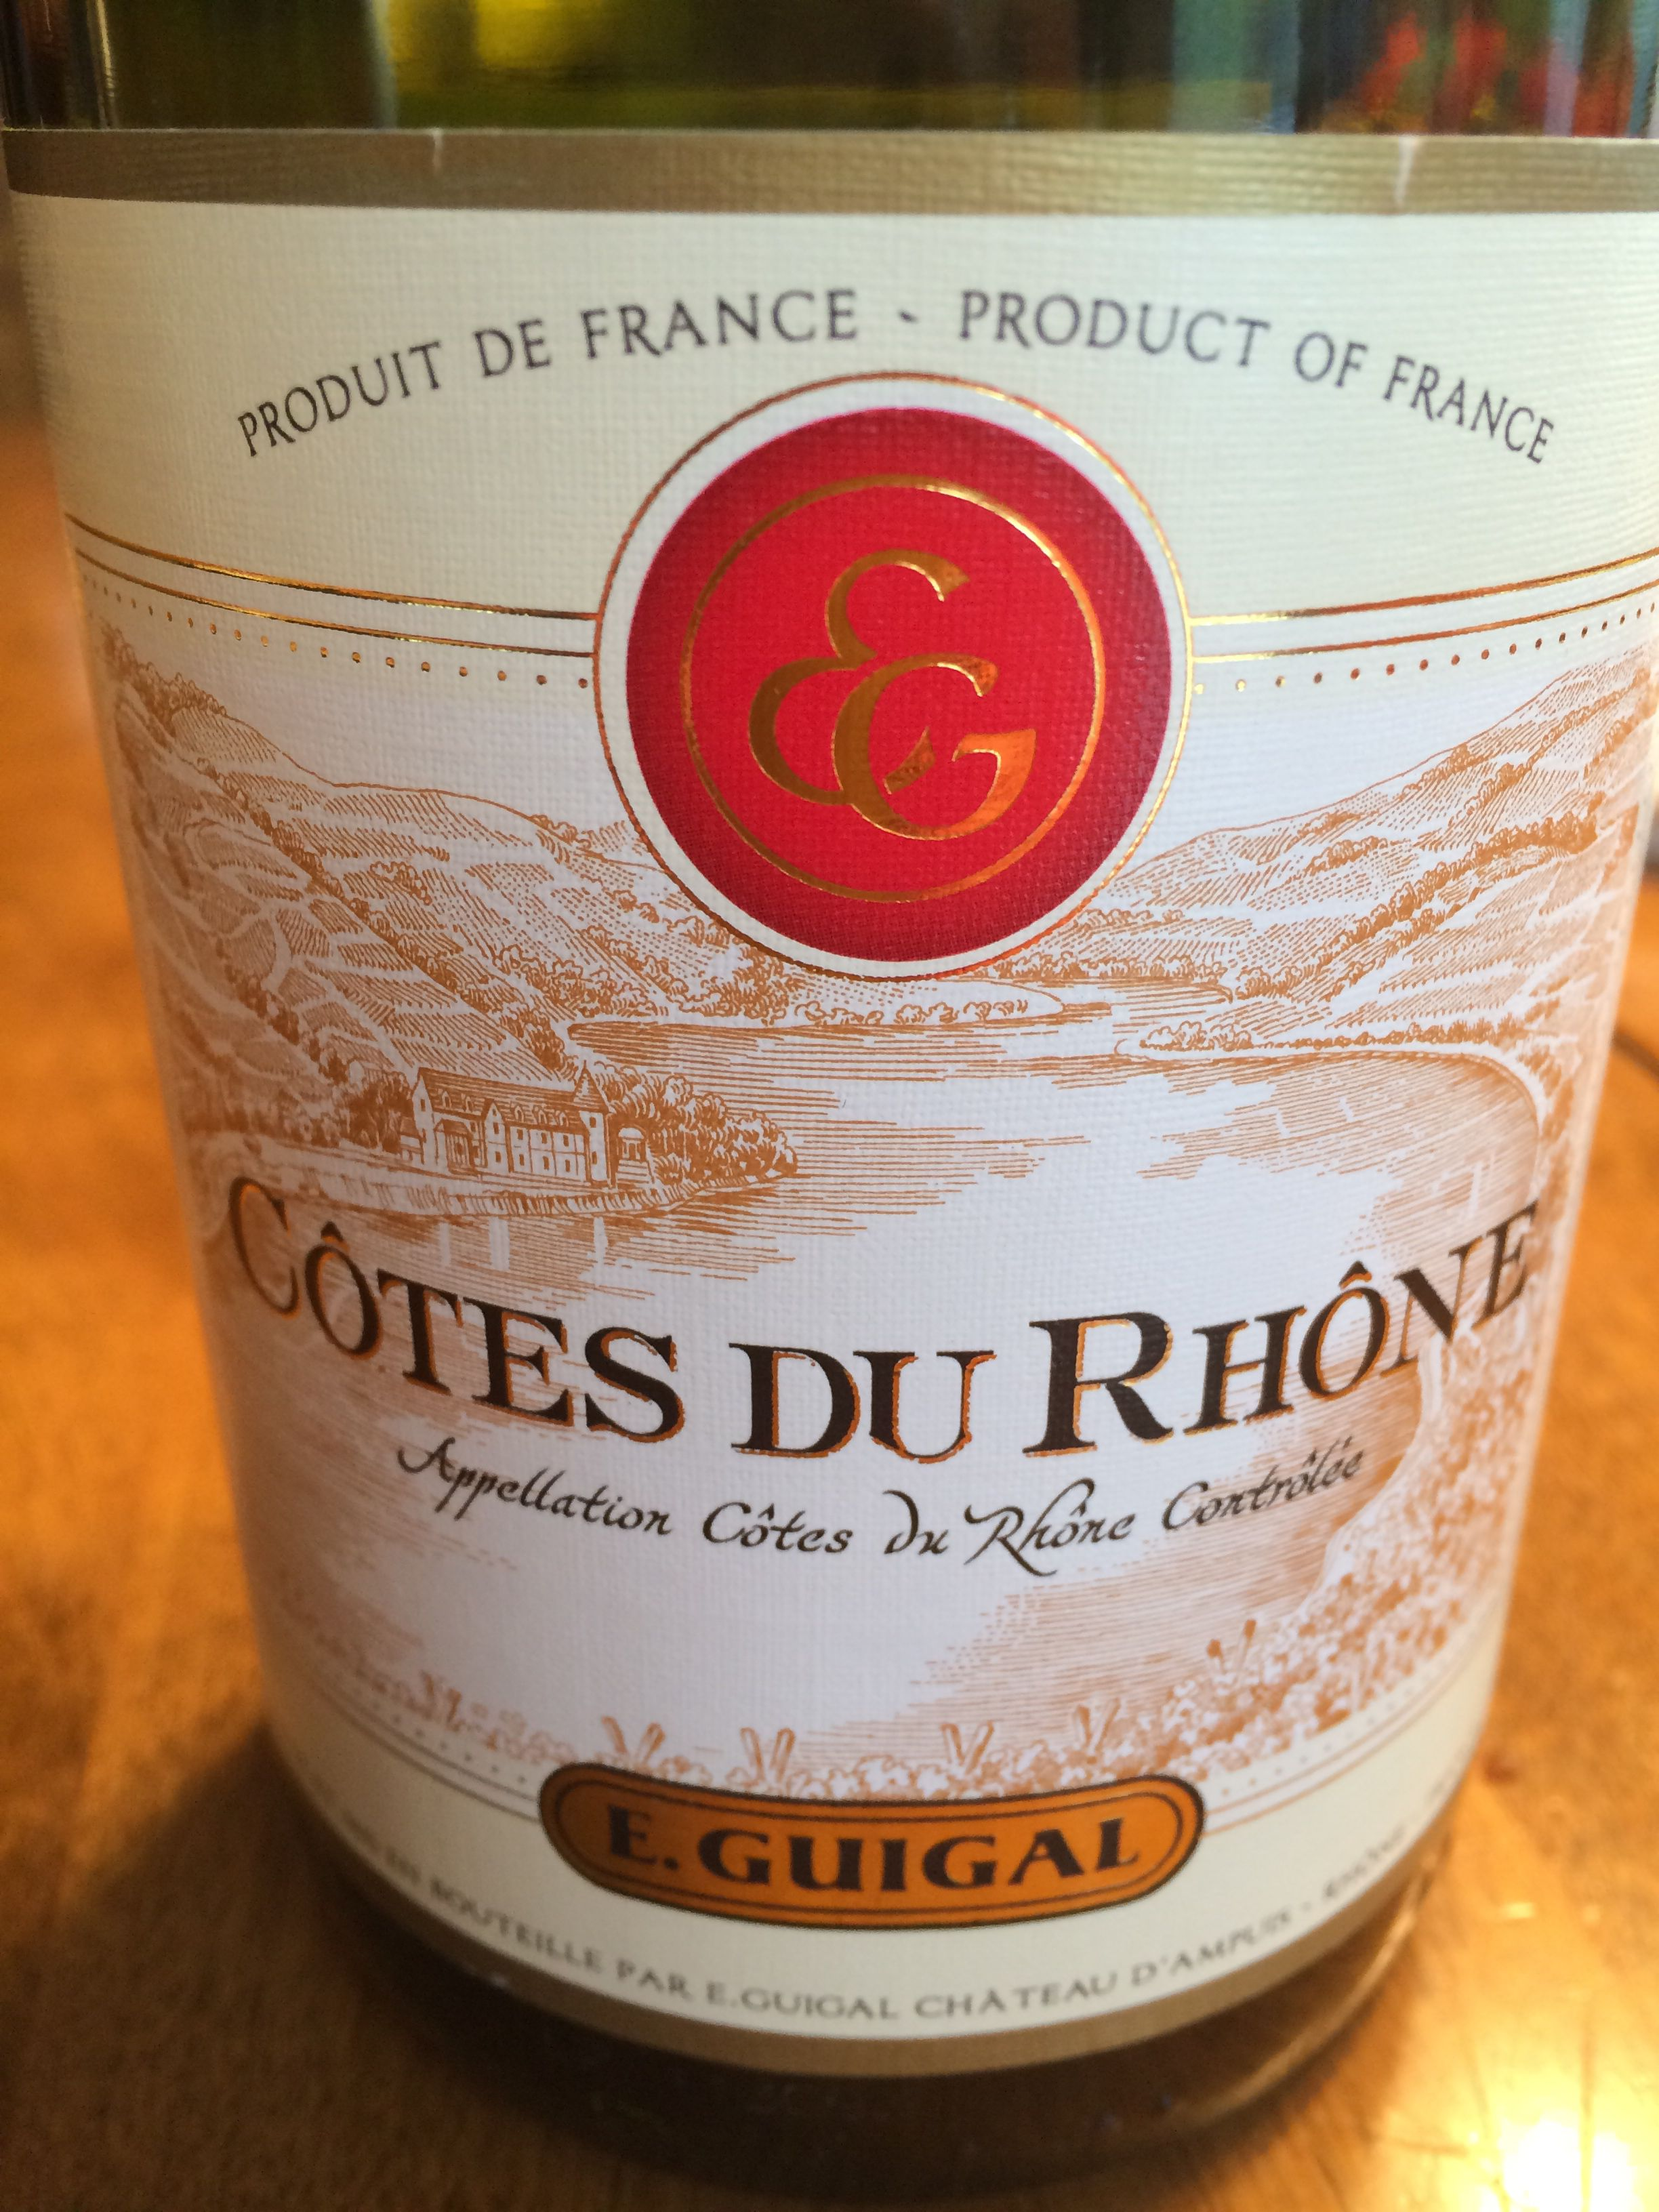 Cotes Du Rhone French Wine Good French Wine For The Price Point Wine Bottle Tito S Vodka Bottle Rose Wine Bottle